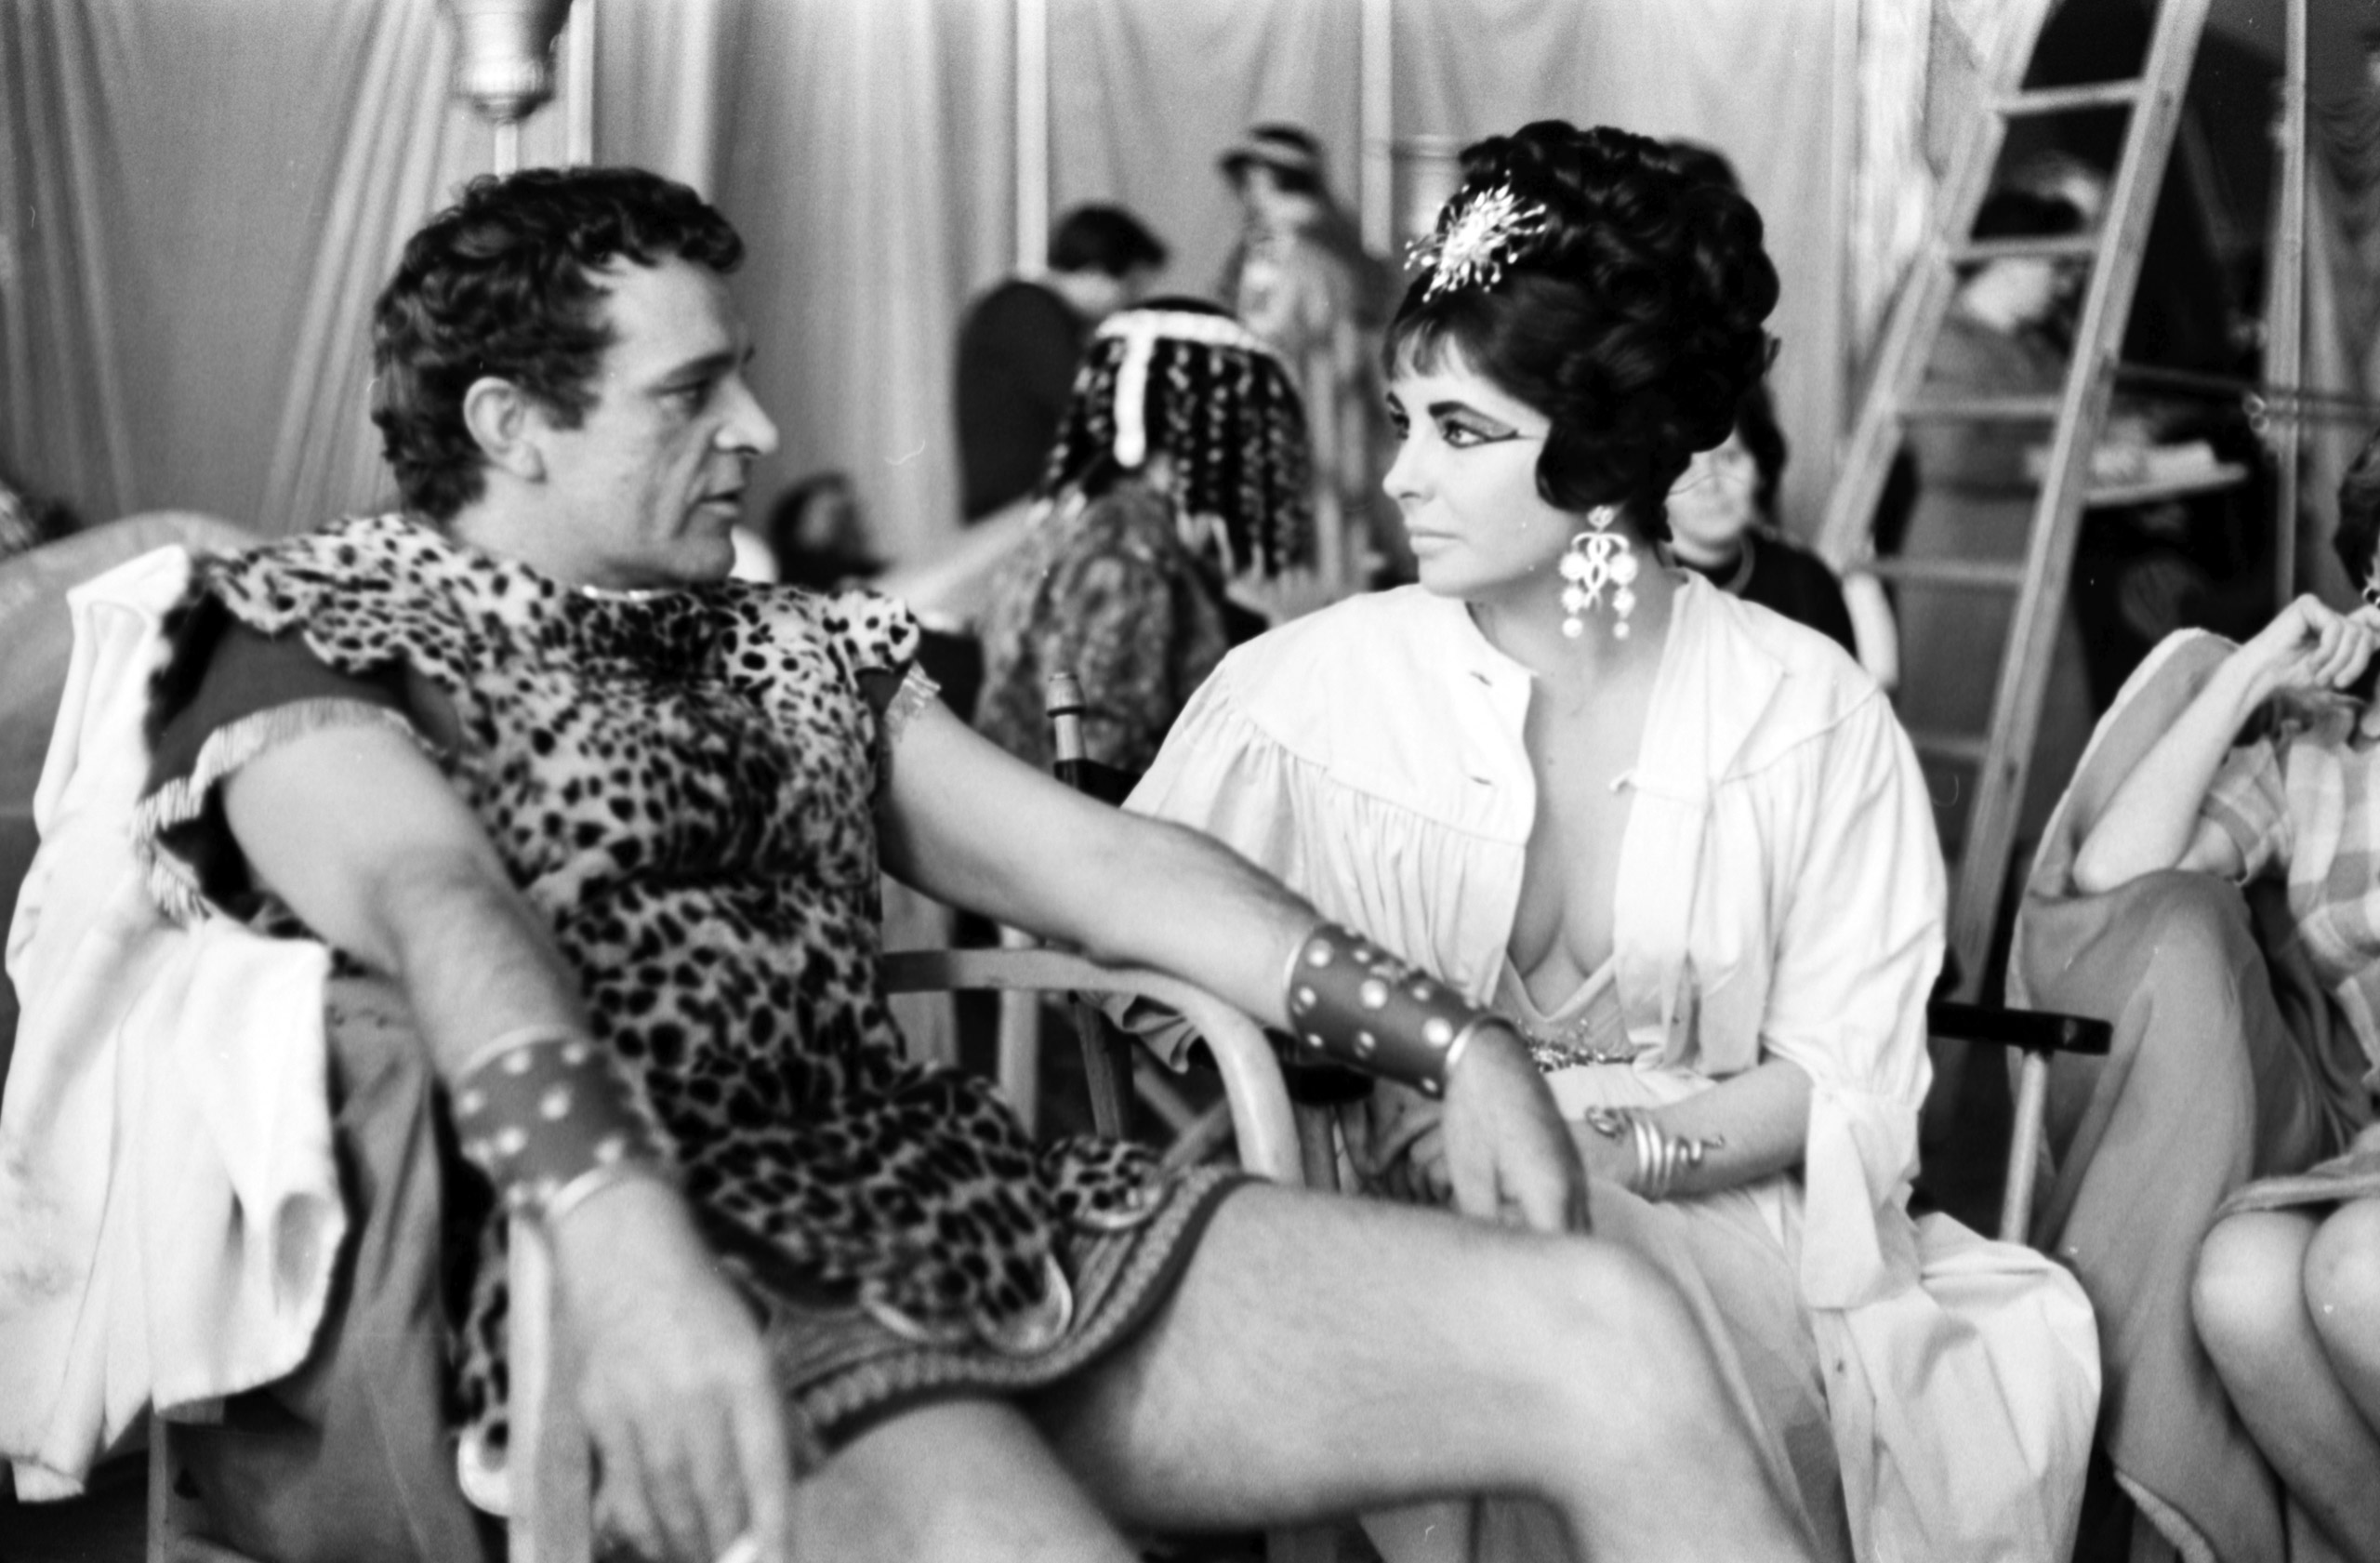 Go as one of Hollywood's most famous couples dressed as one of history's most famous couples: Richard Burton and Elizabeth Taylor as Mark Antony and Cleopatra (1962).